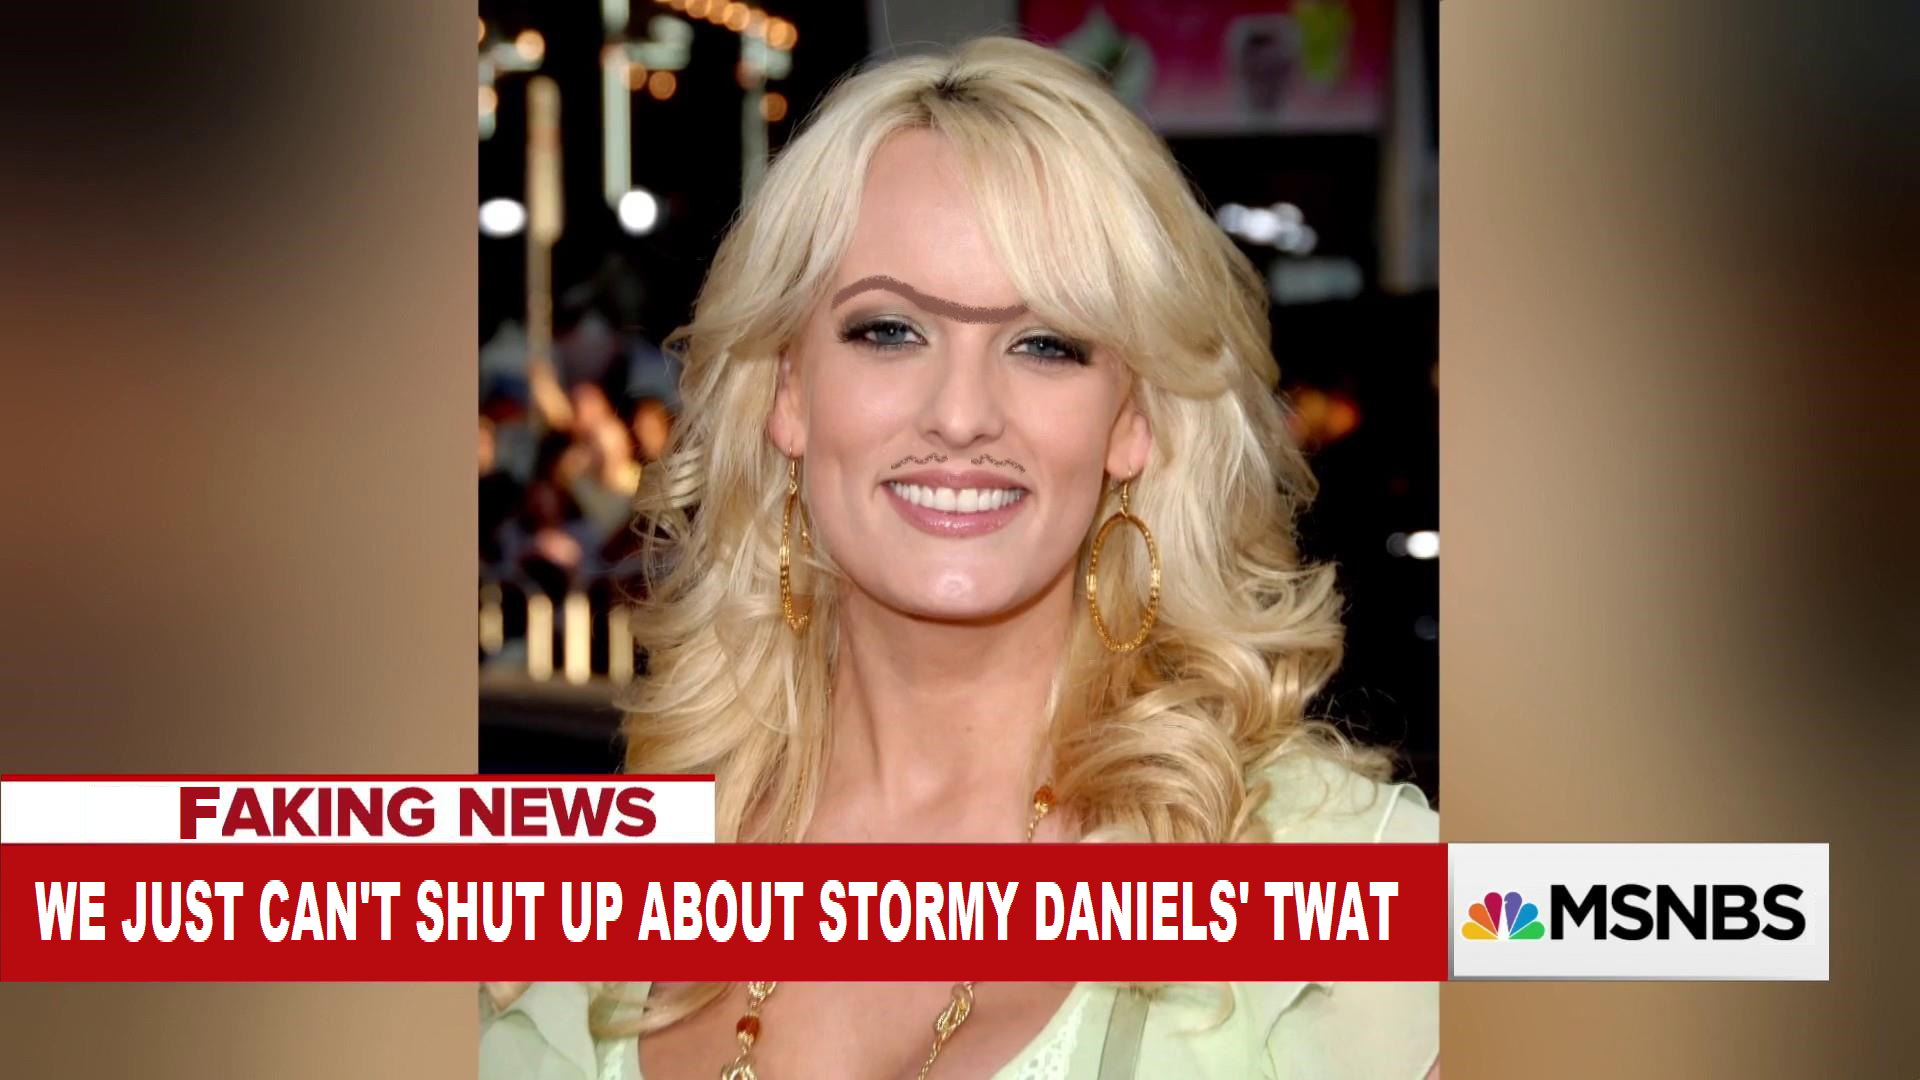 stormy daniels with unibrow.png